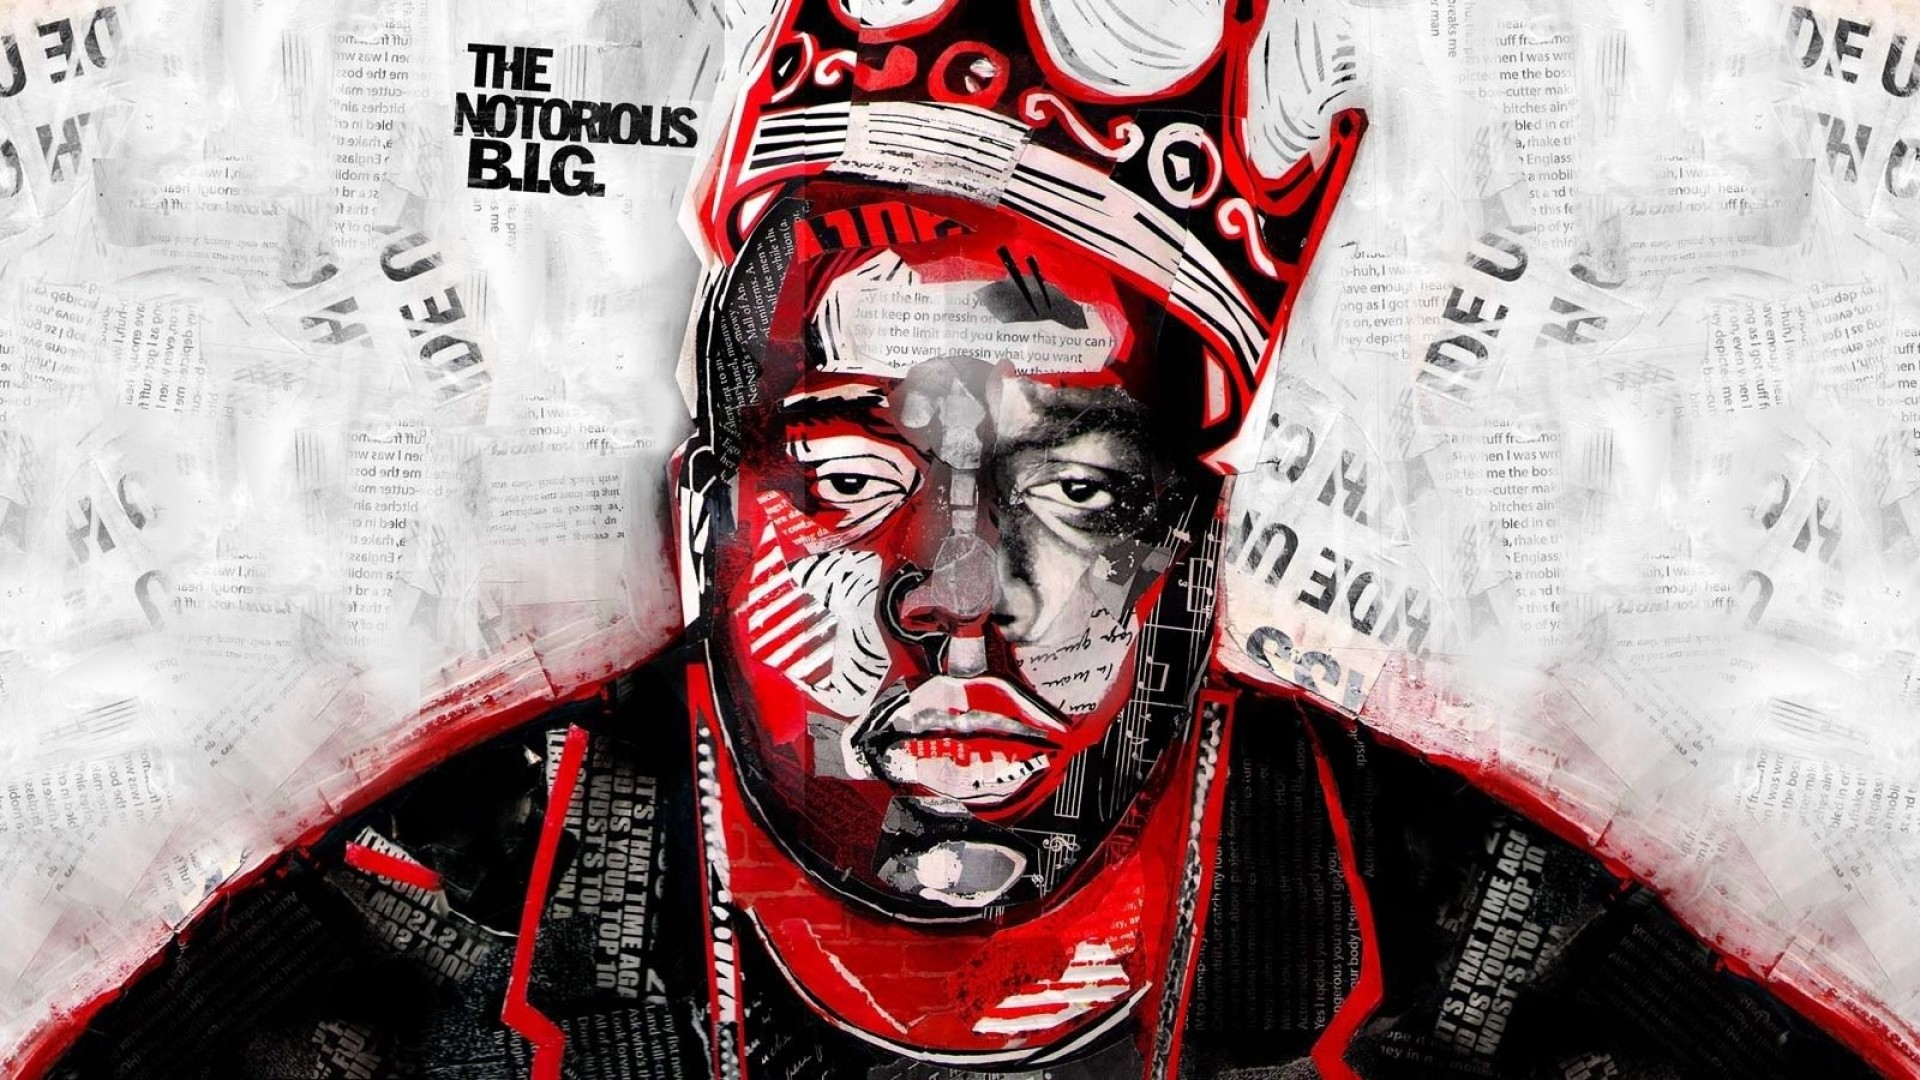 The Notorious Big Wallpaper 69 Images